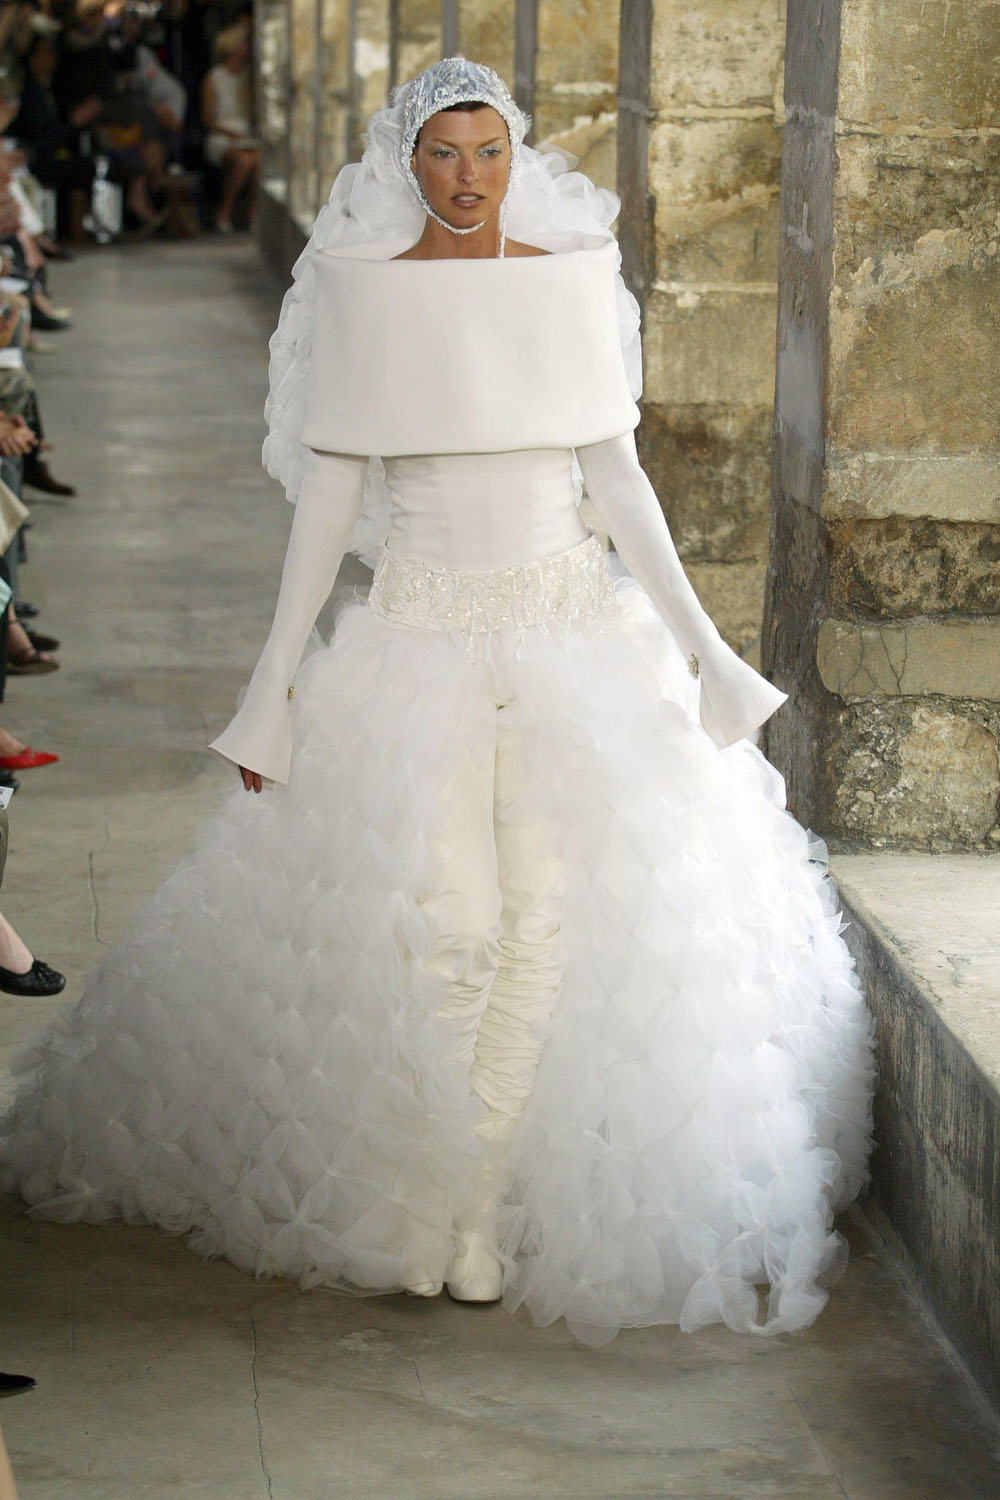 best chanel wedding dresses these are the celebrity chanel brides to know wedding dresse Best Chanel Wedding Dresses These Are The Celebrity Chanel Brides To Know